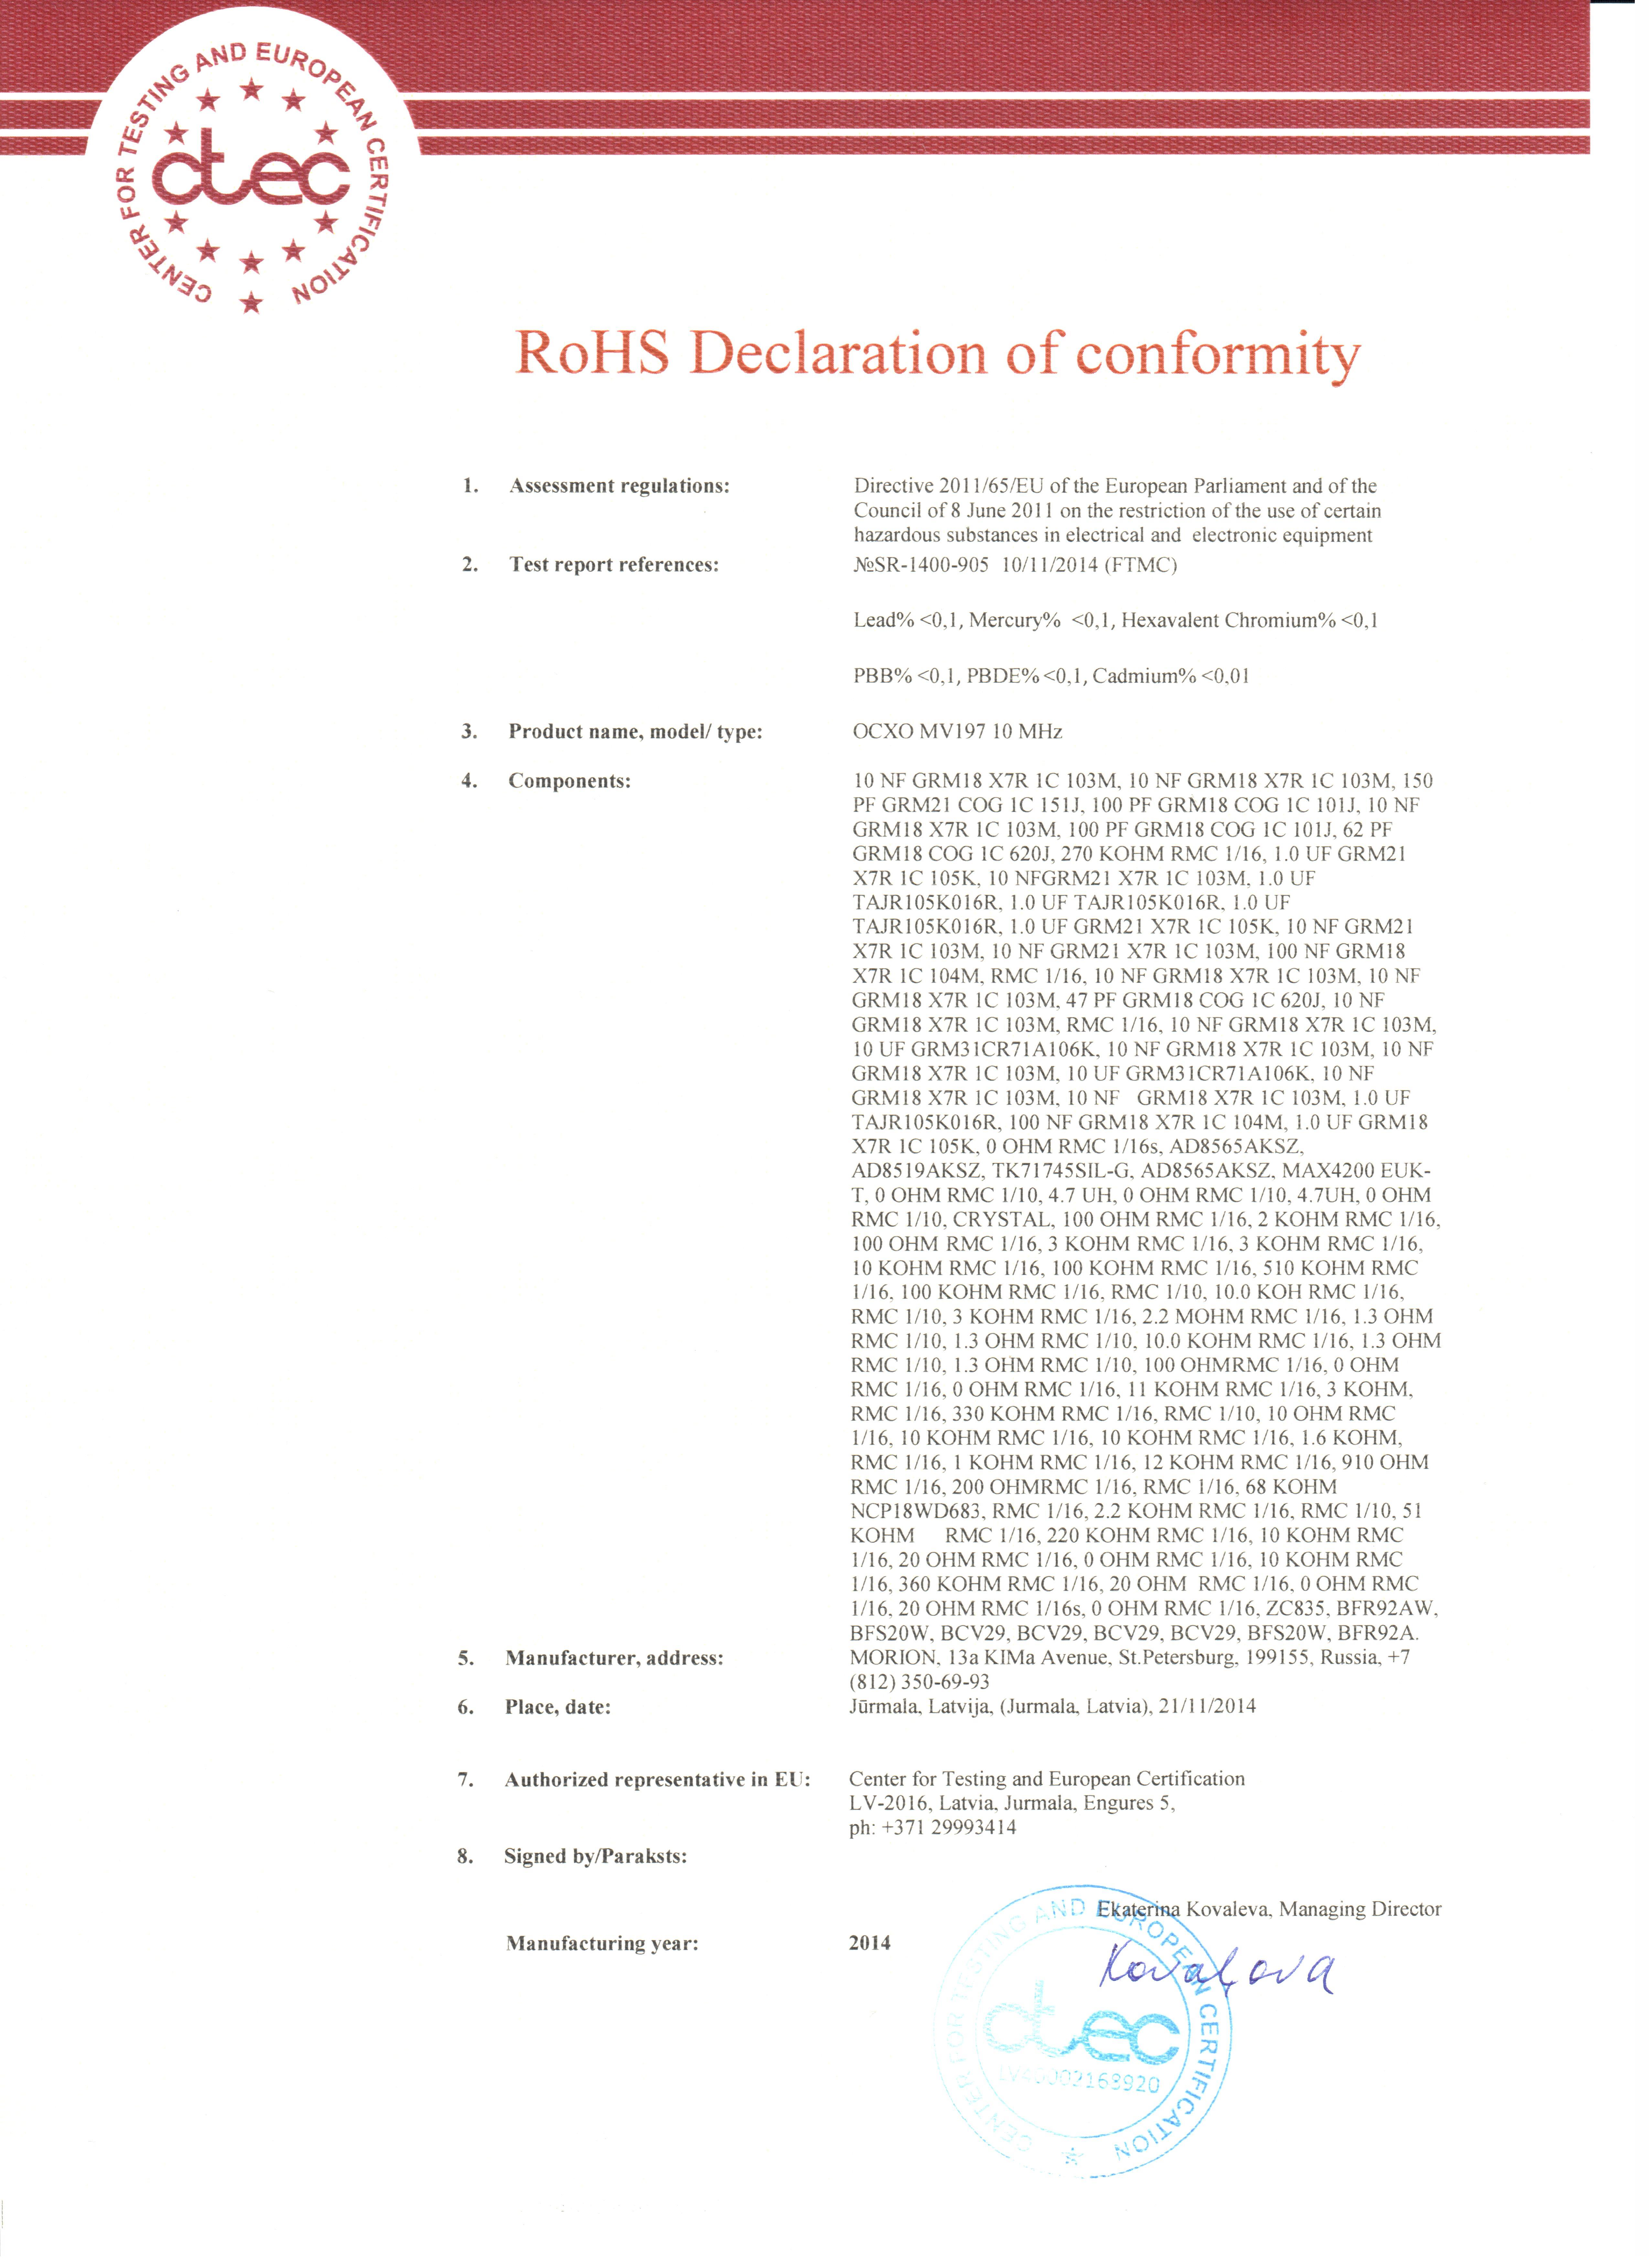 RoHS certificate RoHs Директива RoHS Declaration of Conformity